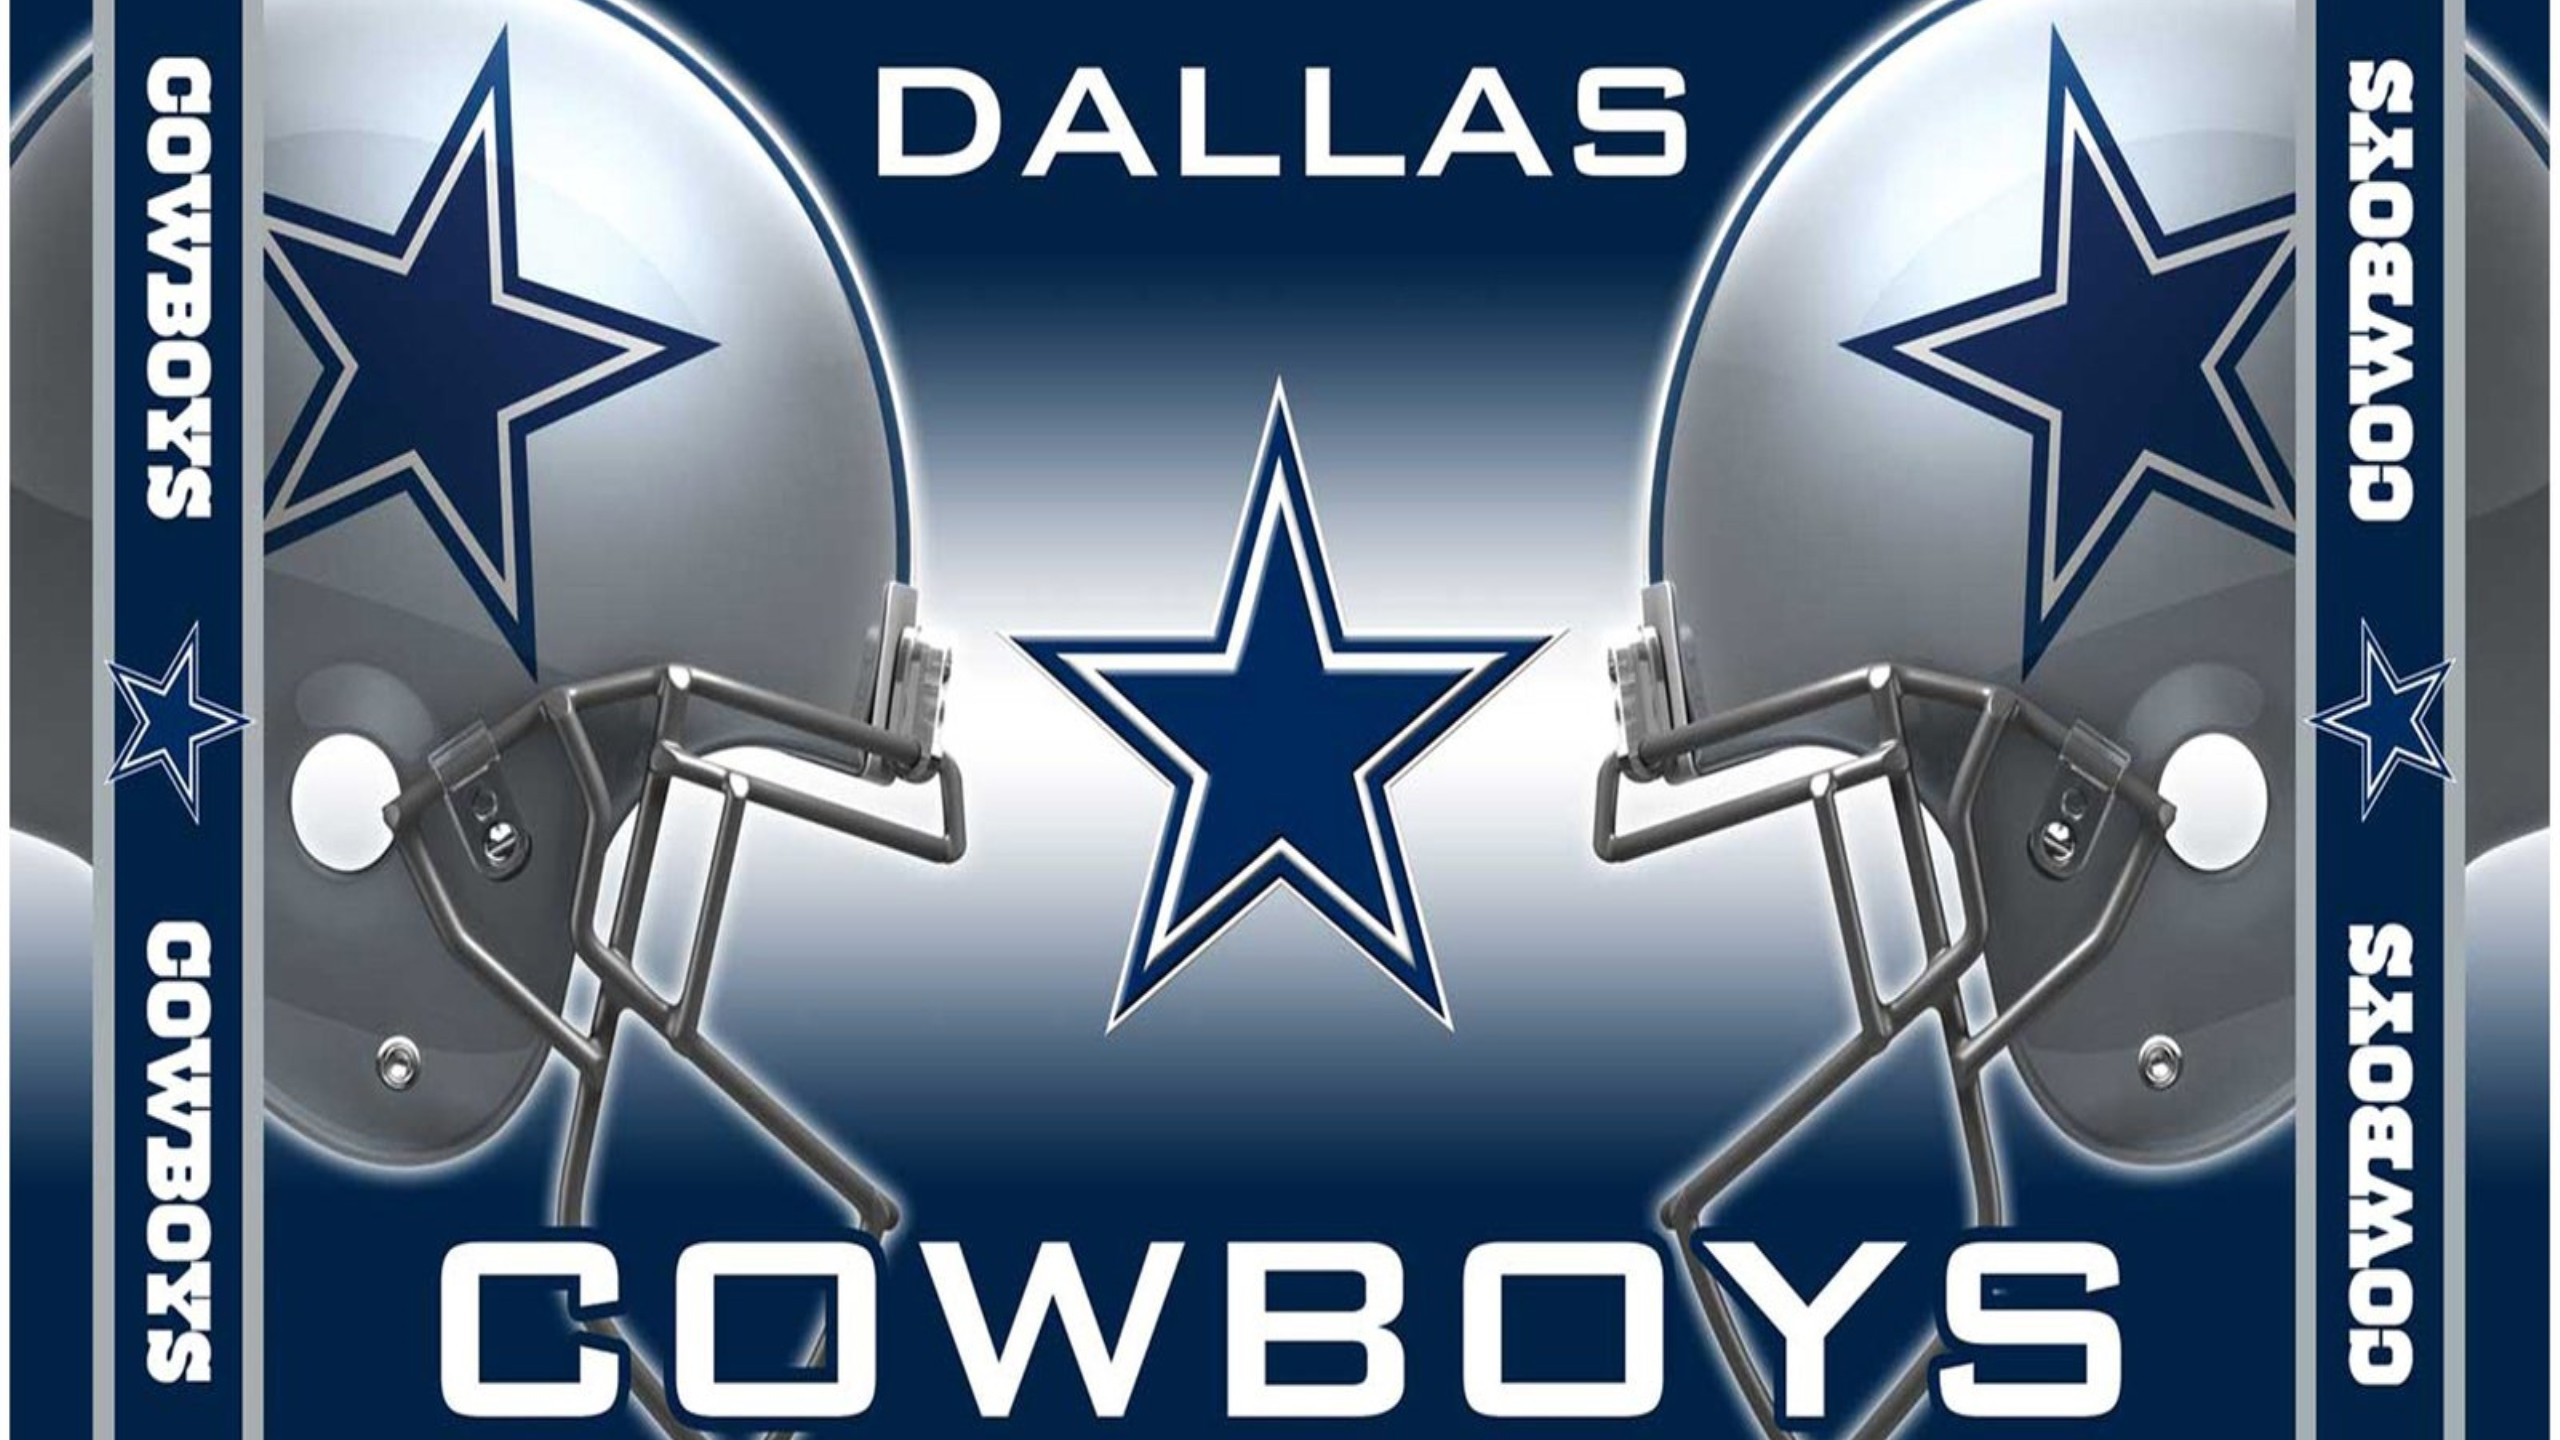 Cool Dallas Cowboys Wallpaper Hd